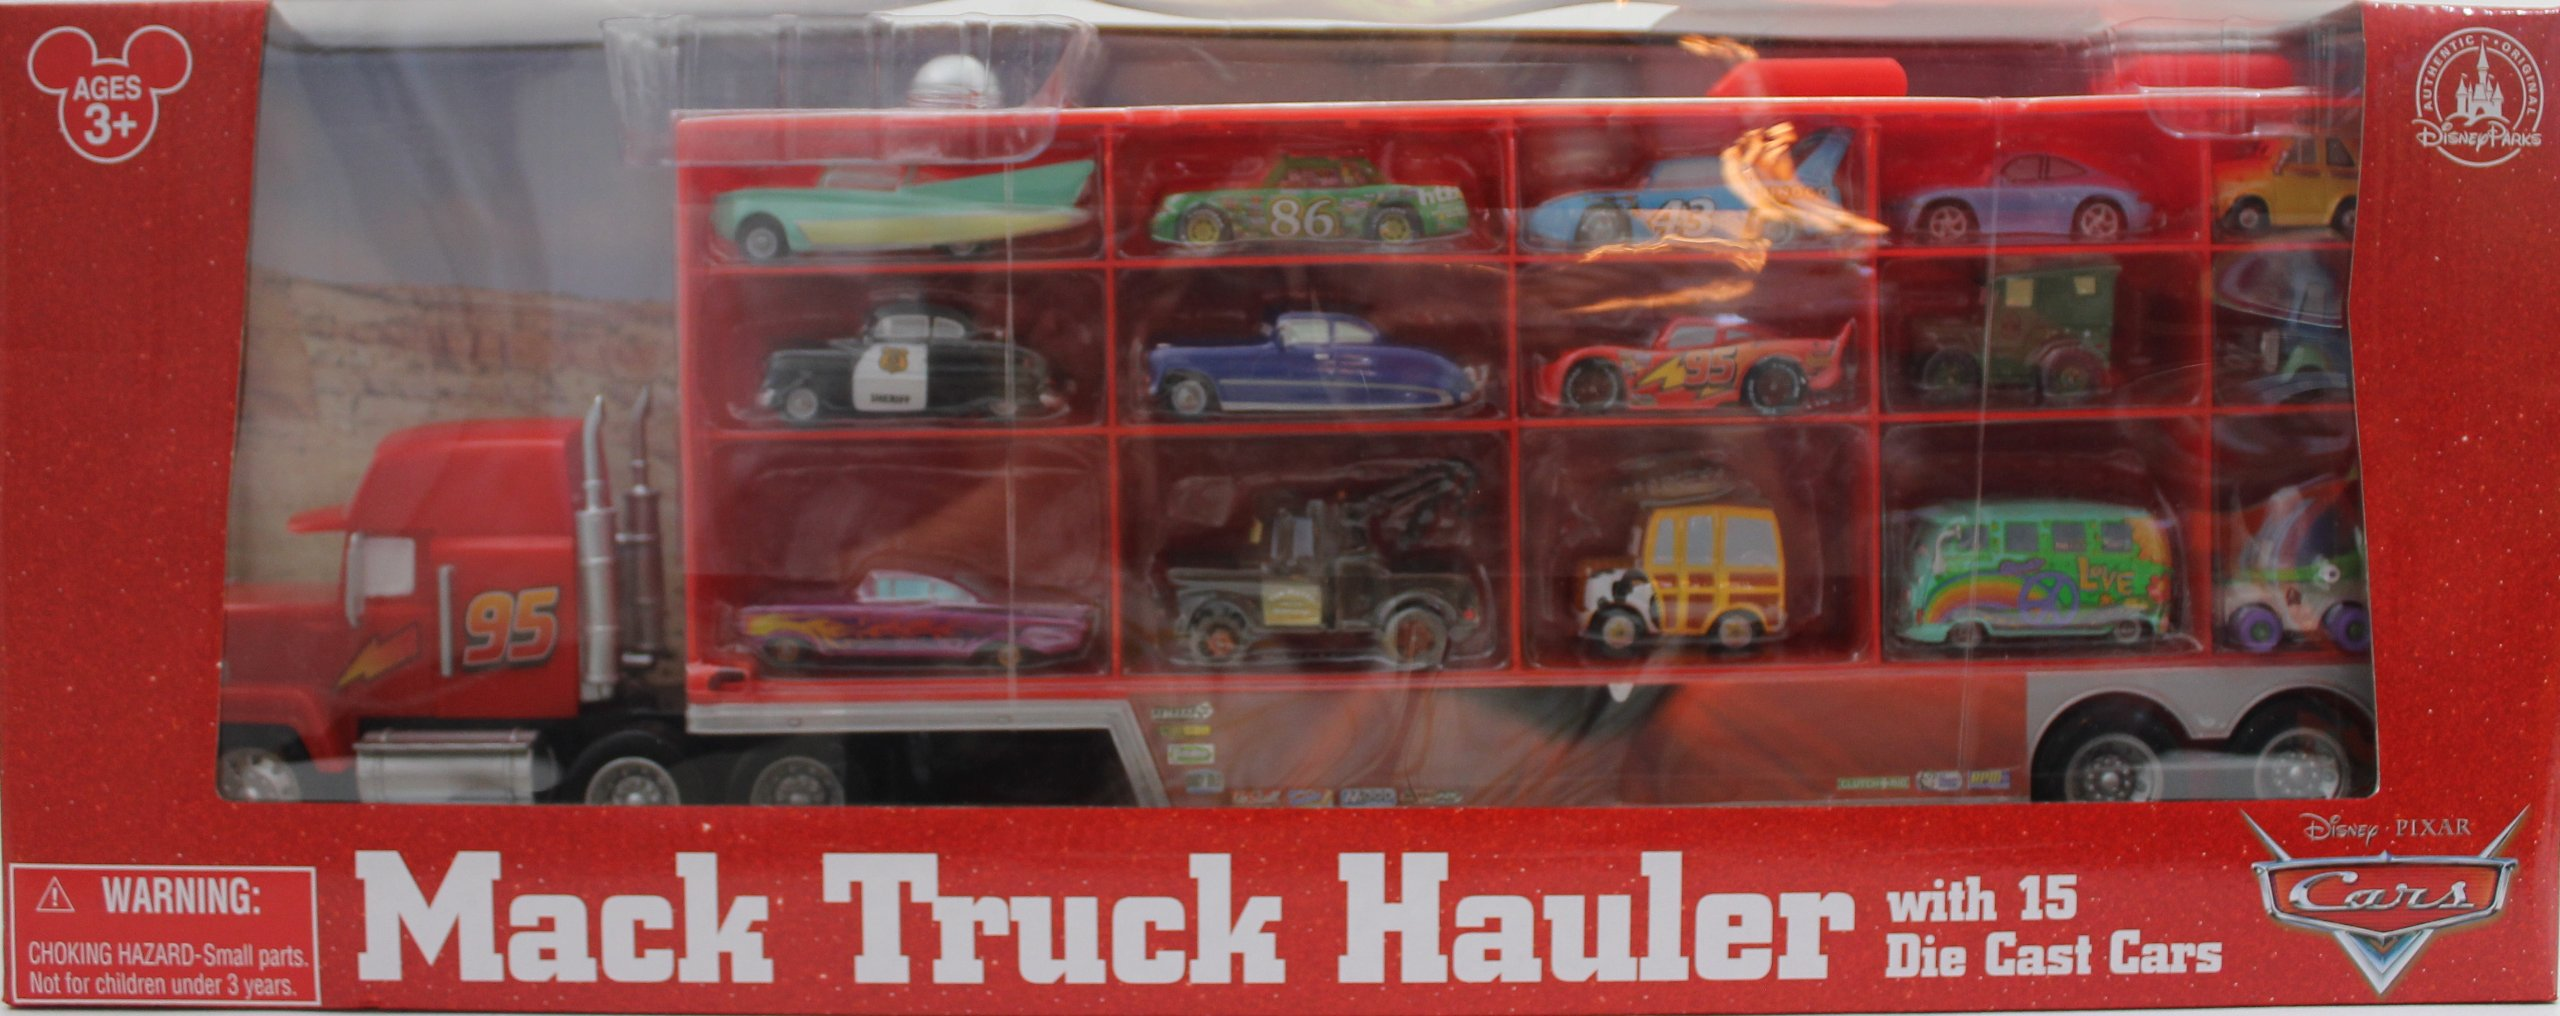 Disney Pixar Cars Mack Truck Hauler Carrying Case 15 Die Cast Character Cars 2012 Edition Disney Theme Parks Exclusive Limited Availability Item Toysplus